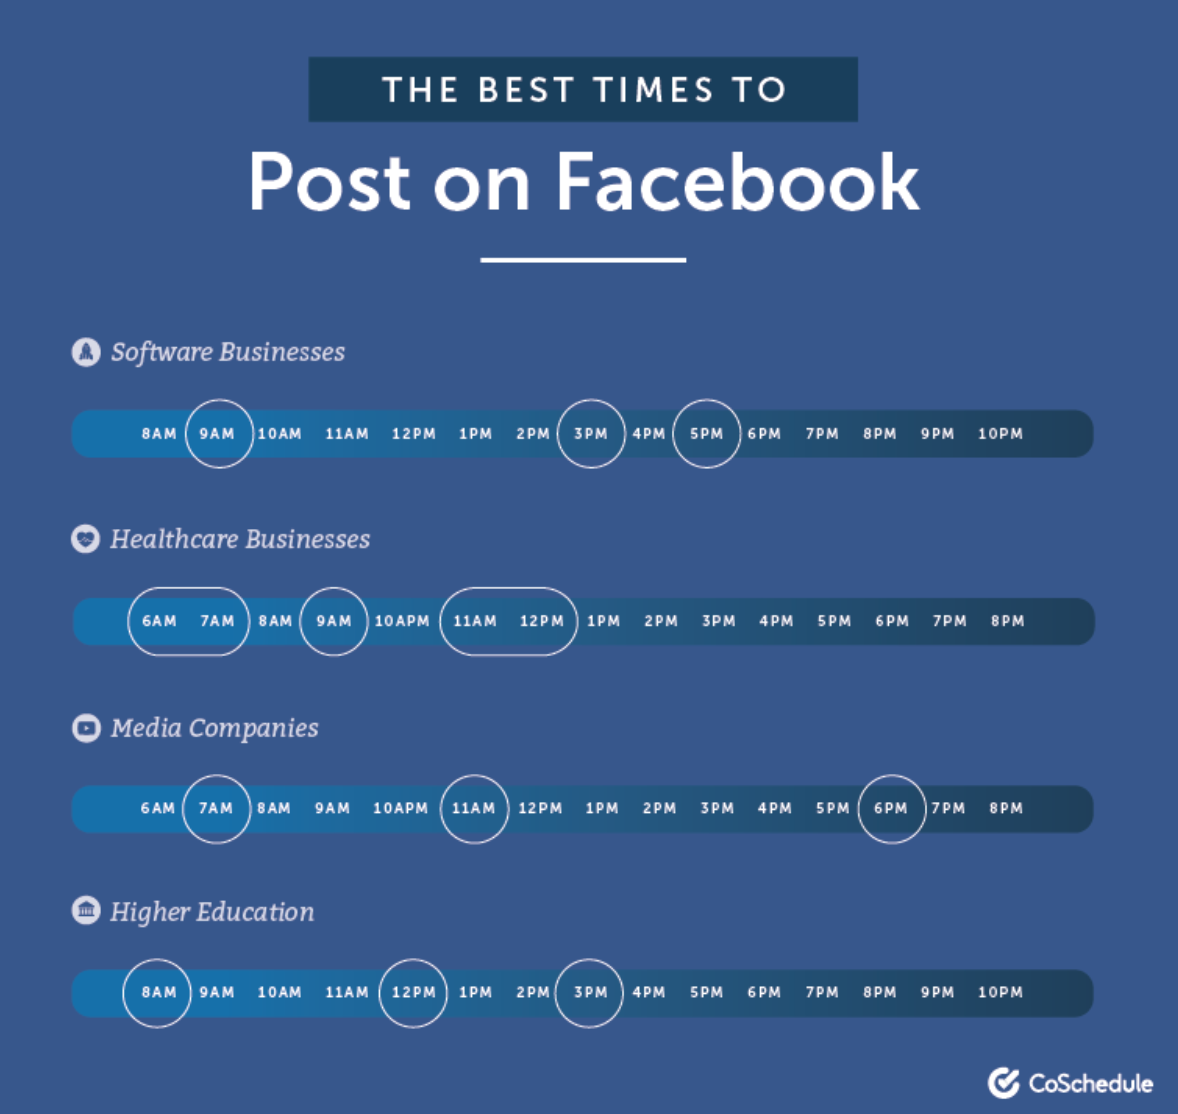 The best times to post on Facebook by industry. Credit: CoSchedul